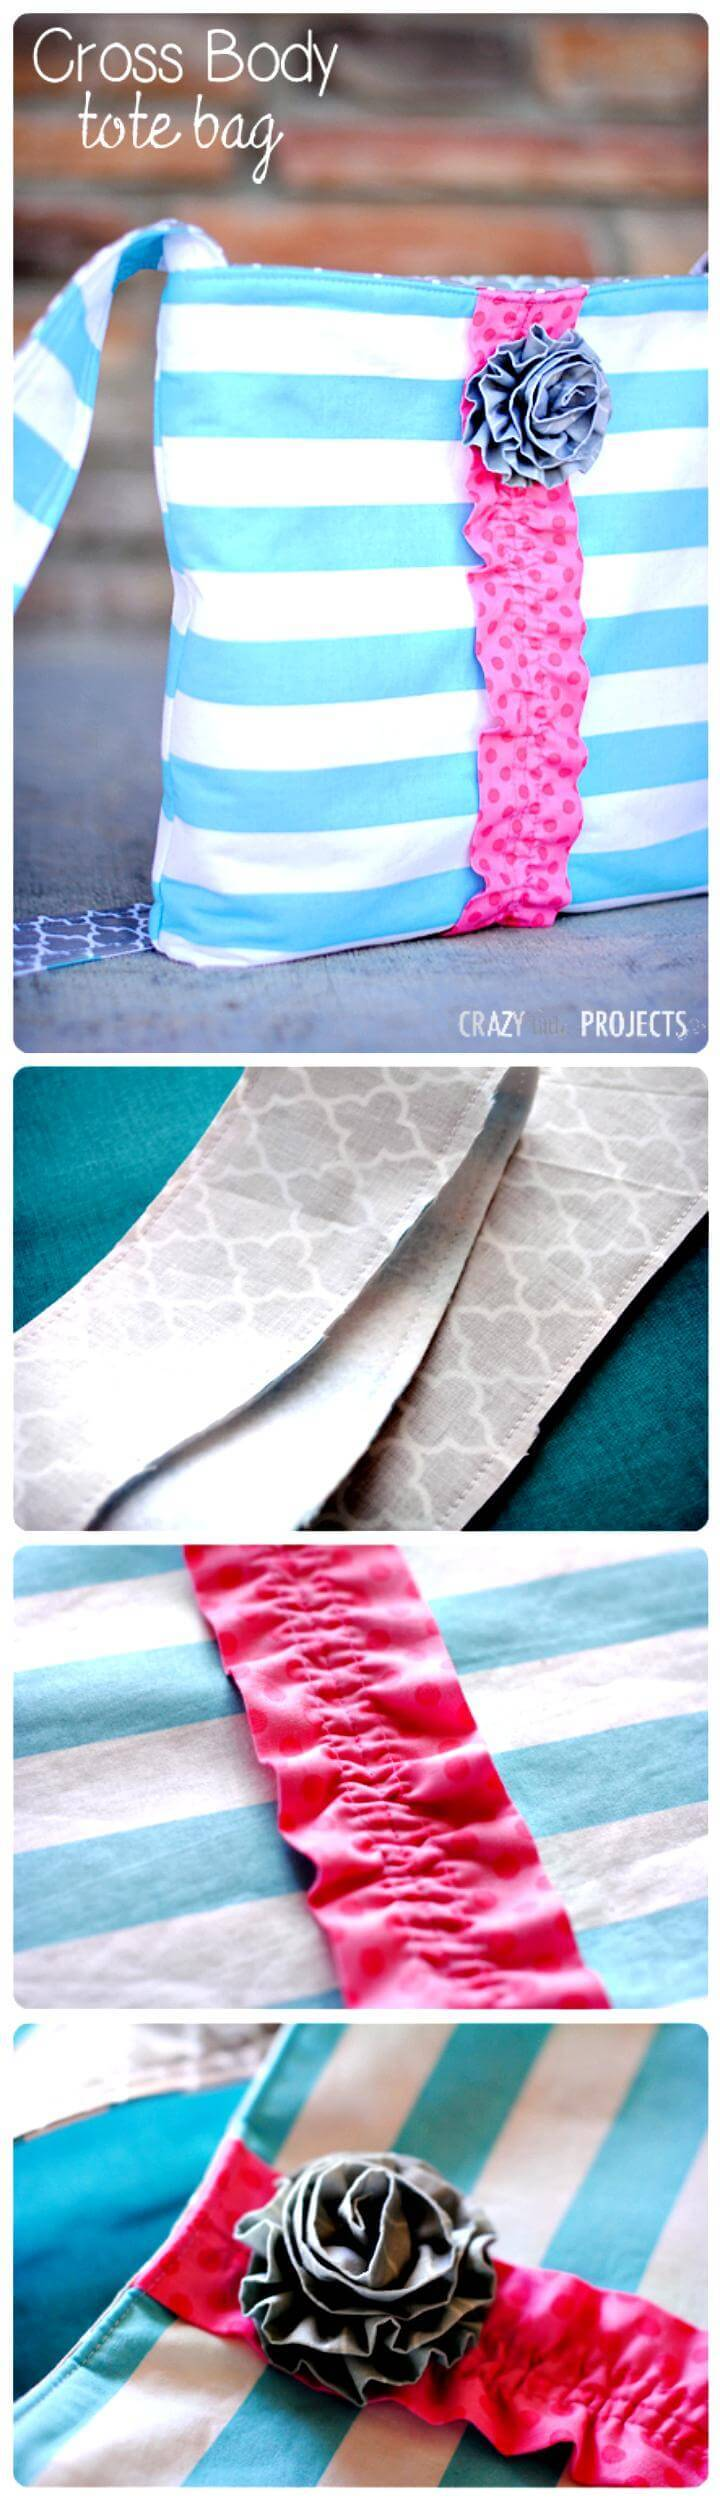 easy cute cross body tote bag tutorial